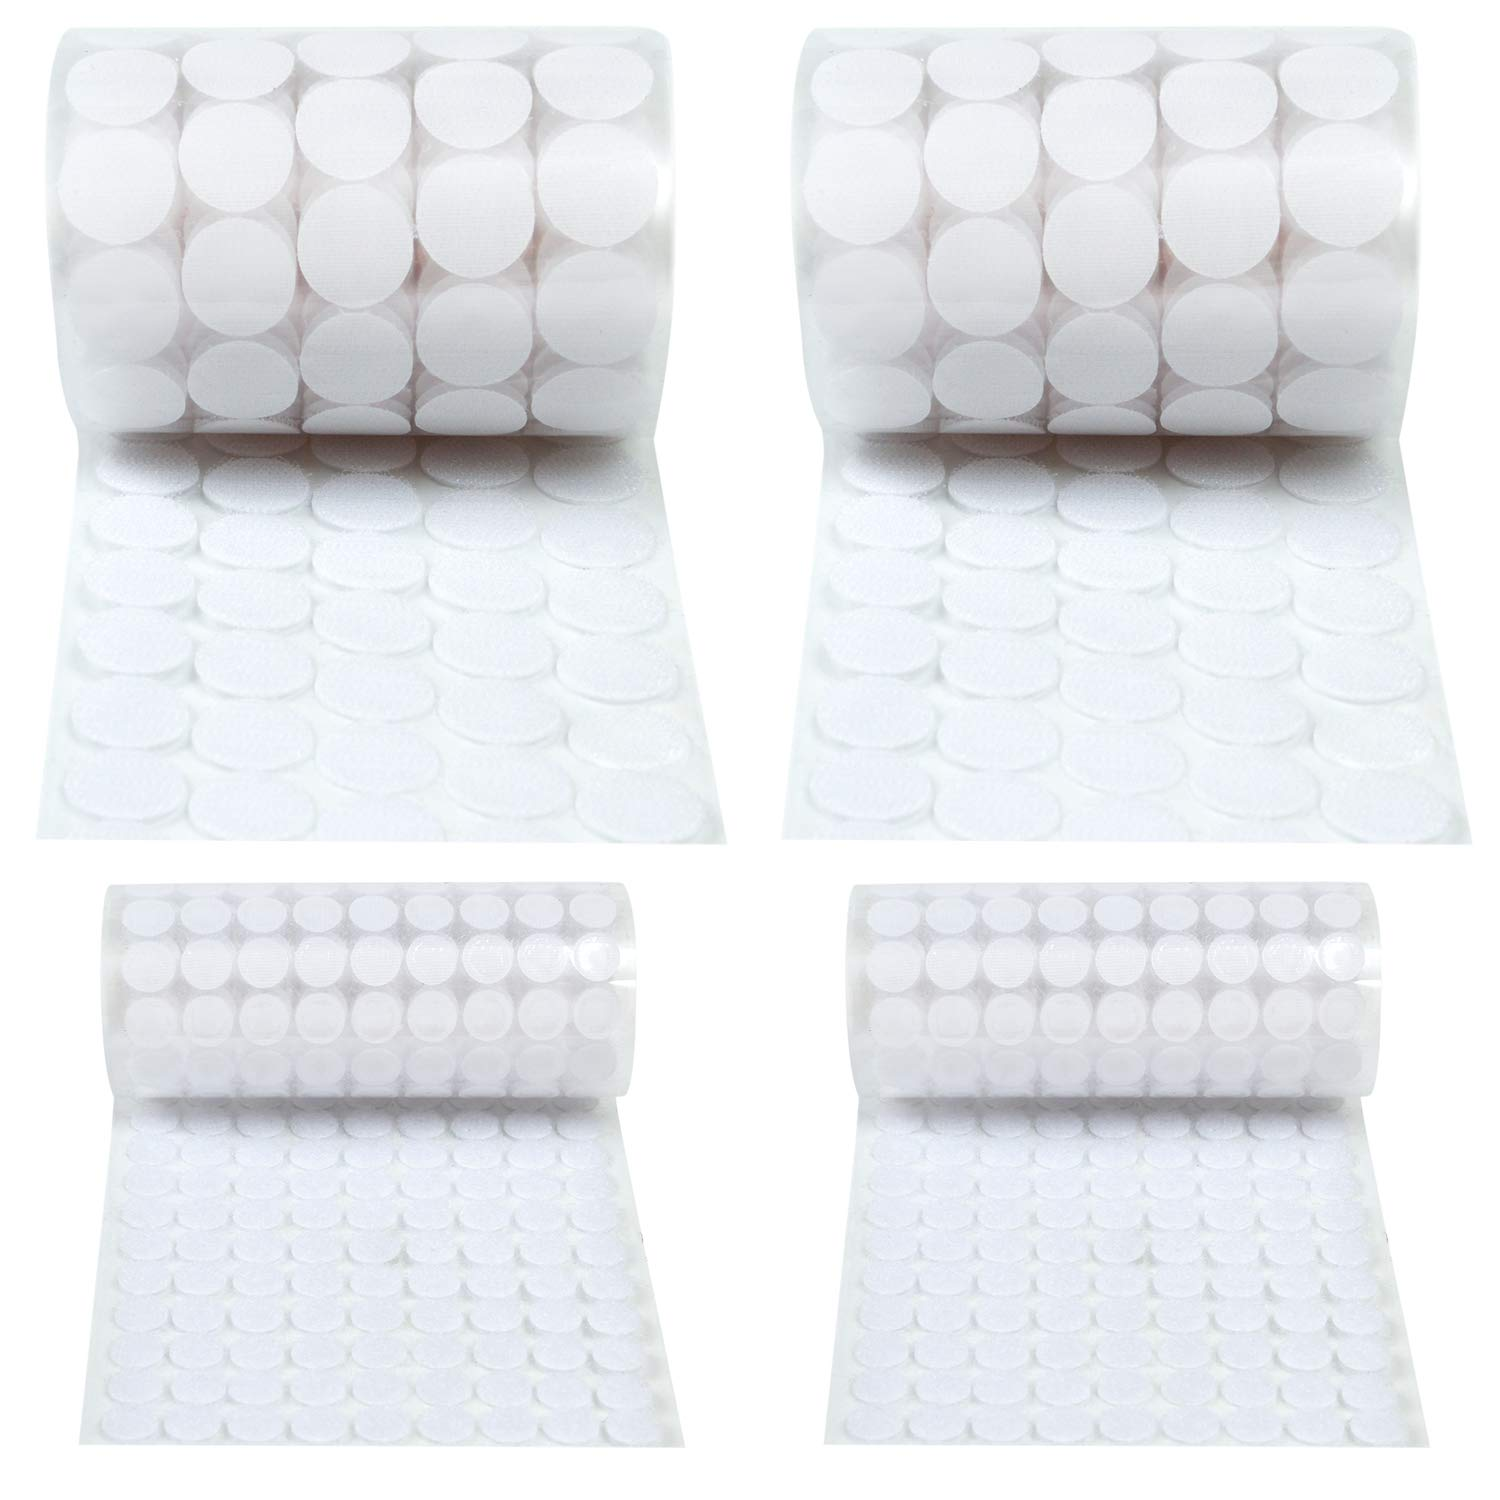 Elcoho 1800 Pieces Self Adhesive Dots Hook and Loop Self Adhesive White Nylon Waterproof Sticky Coins Dots Tapes(900 Pairs)